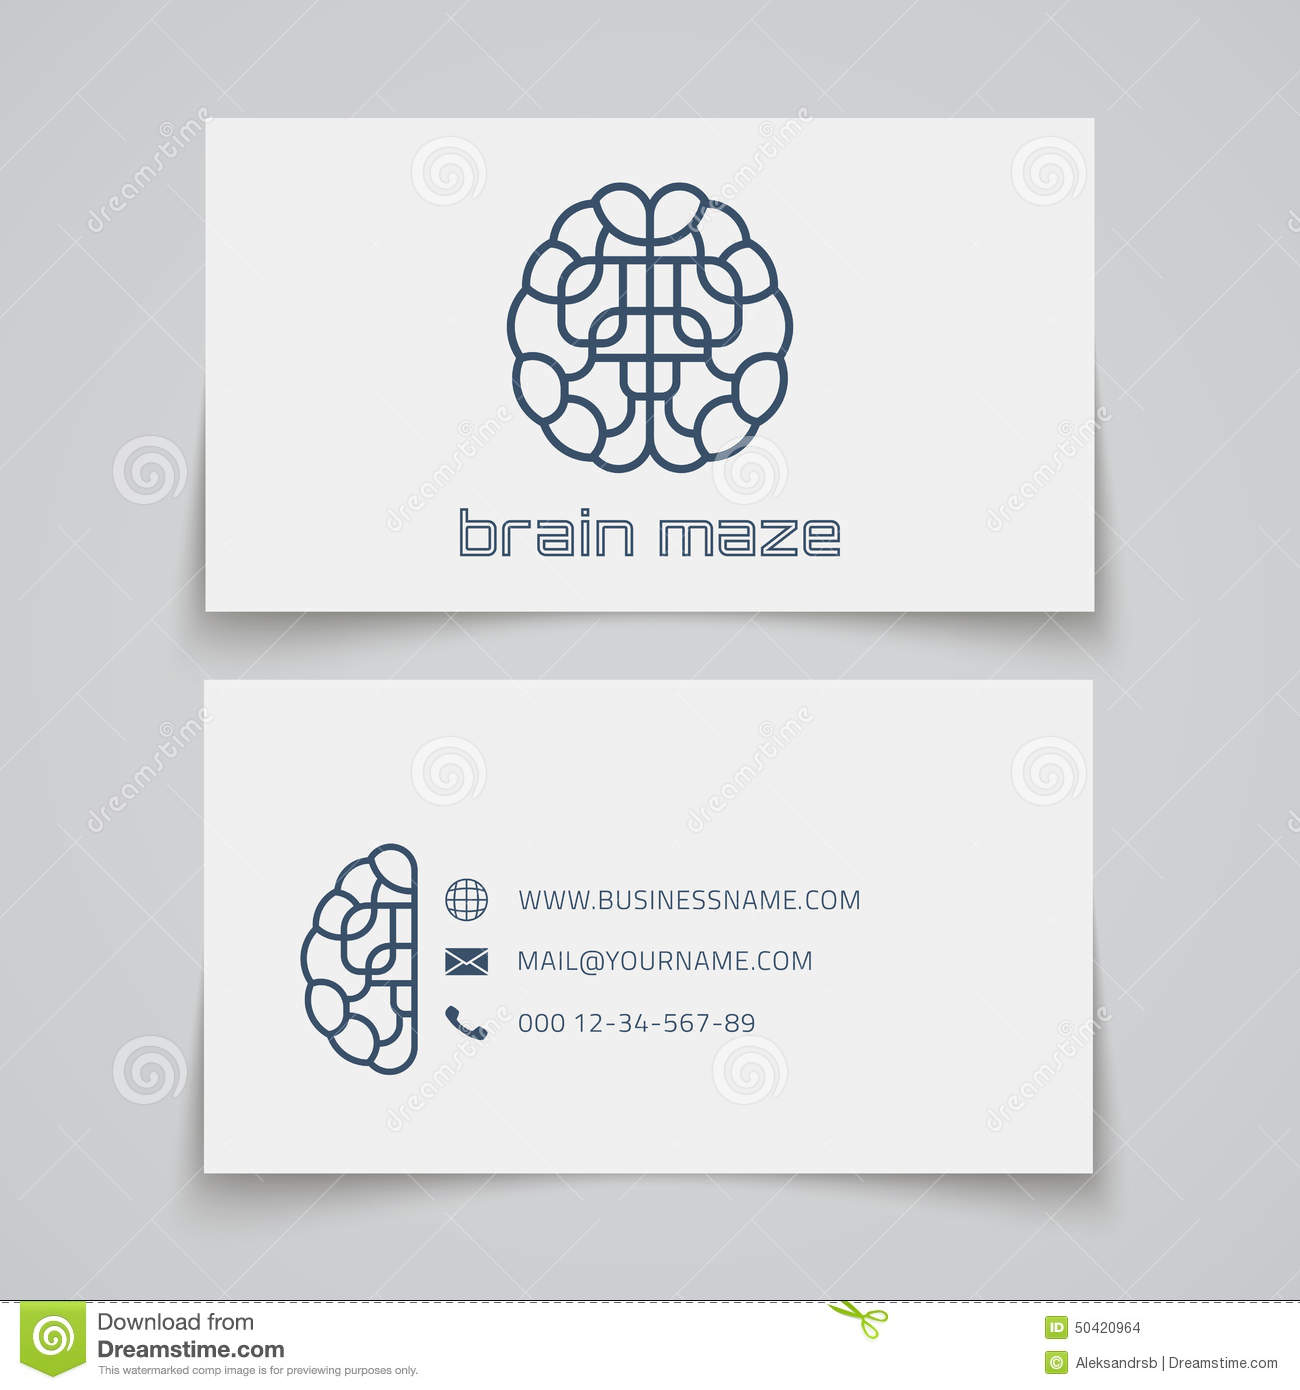 Business card template brain maze logo stock vector illustration download business card template brain maze logo stock vector illustration of background letterhead reheart